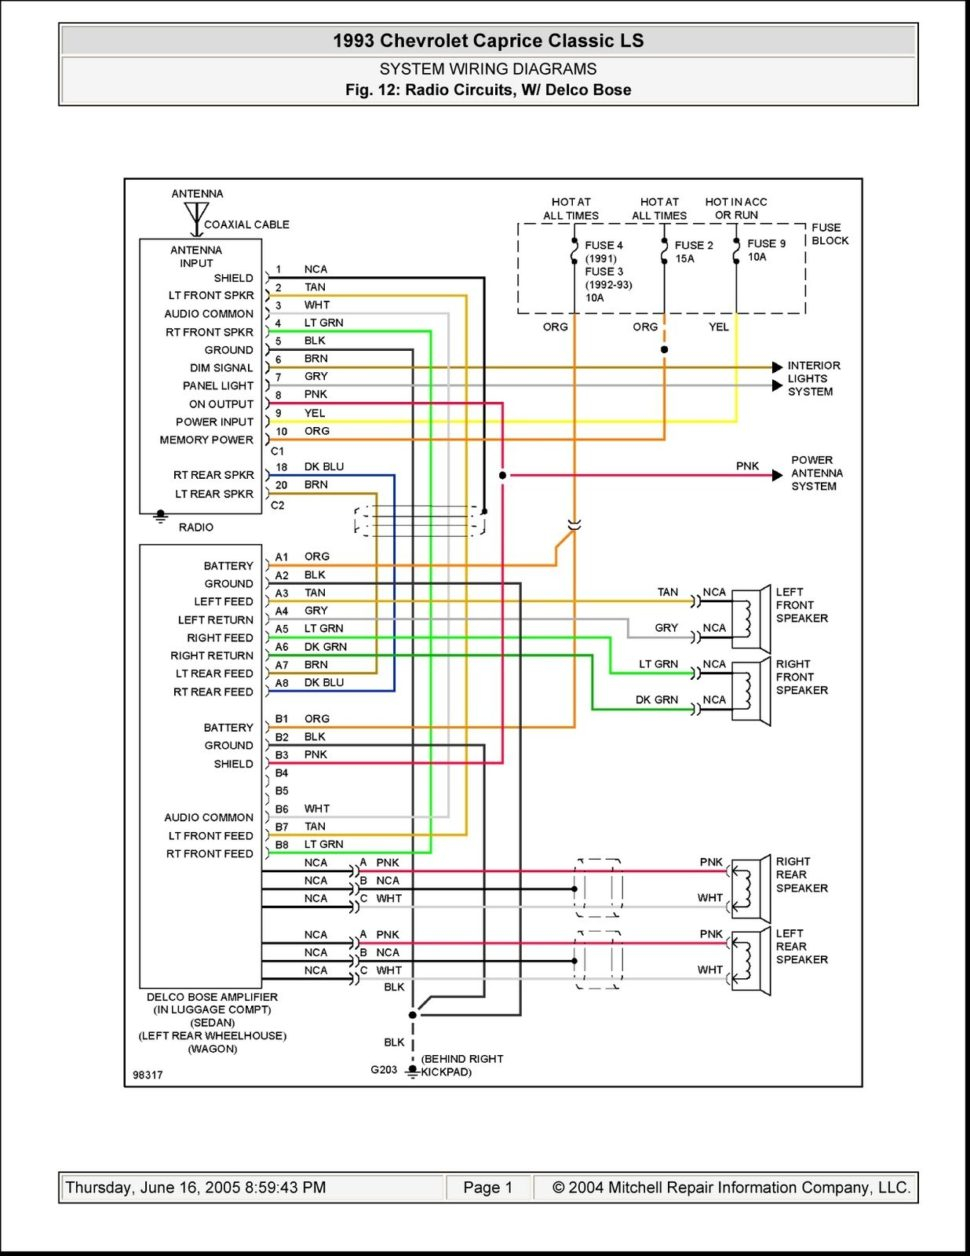 97 lincoln continental radio wiring diagram Download-jensen stereo wiring harness jensen car stereo wiring diagram rh gobbogames co 1999 Lincoln Town Car Wiring Diagram 1999 Lincoln Town Car Wiring Diagram 2-s